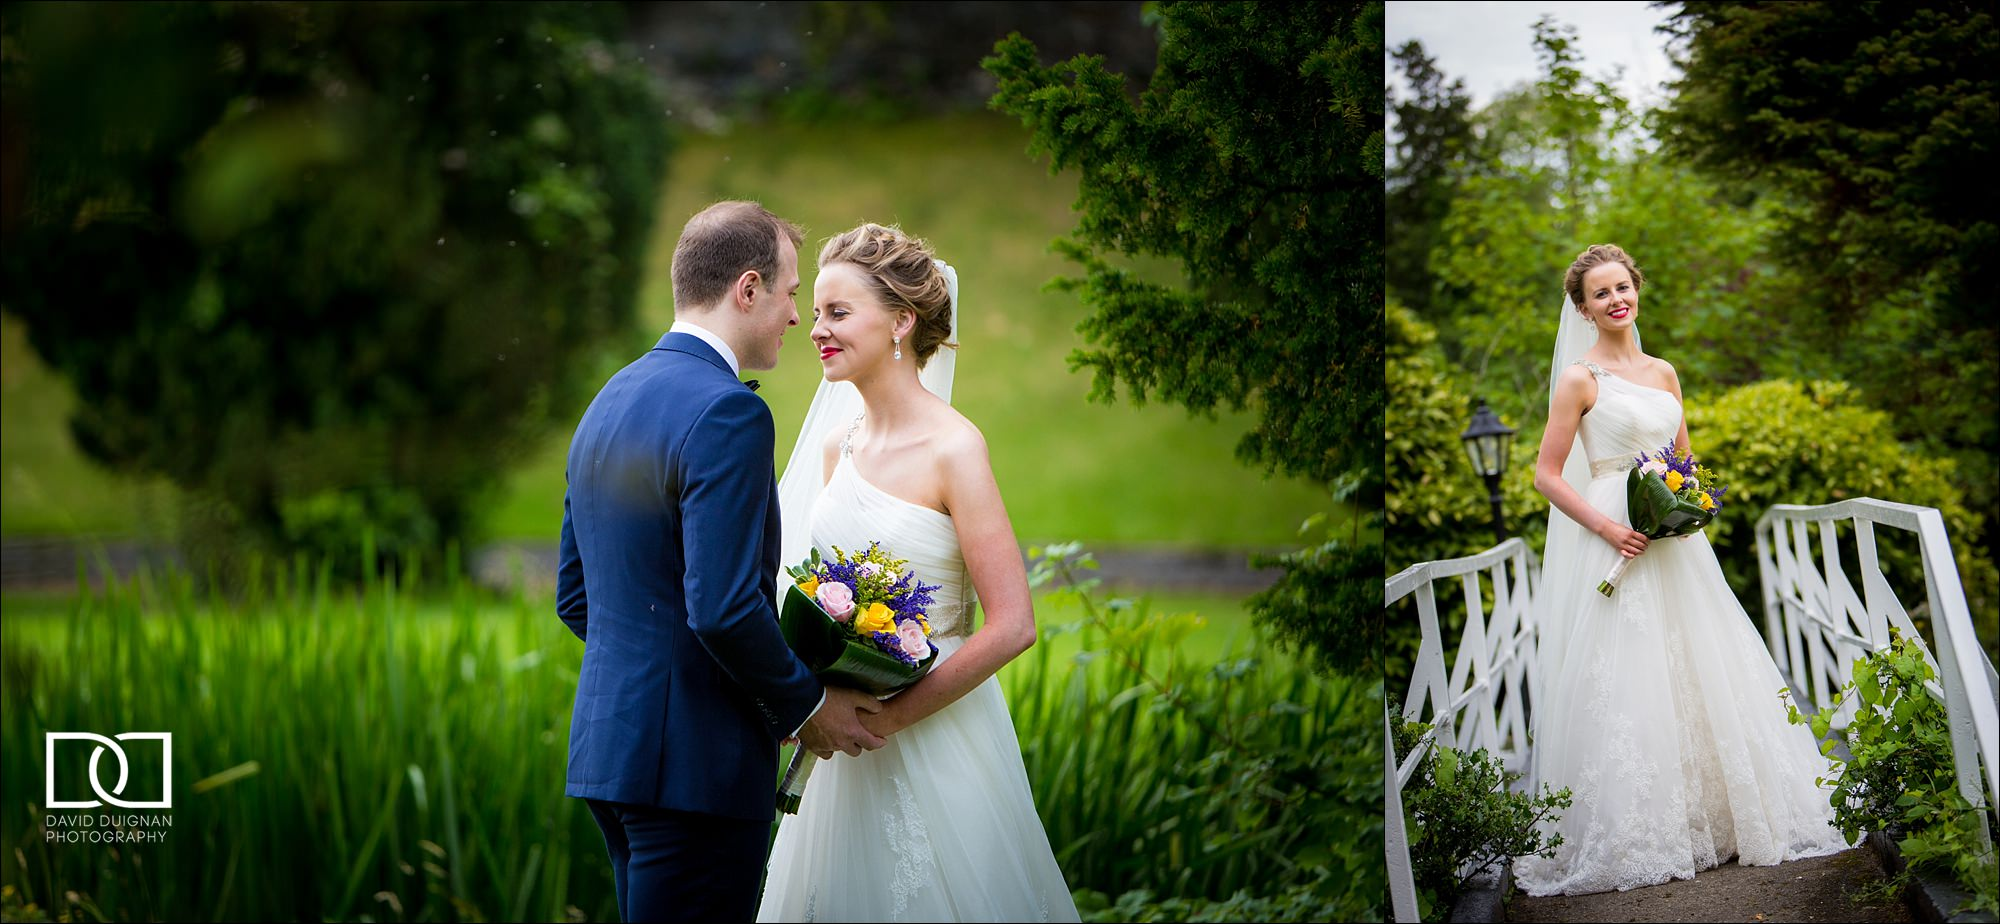 louth wedding photographer david duignan photography castle bellingham wedding Ireland 0038